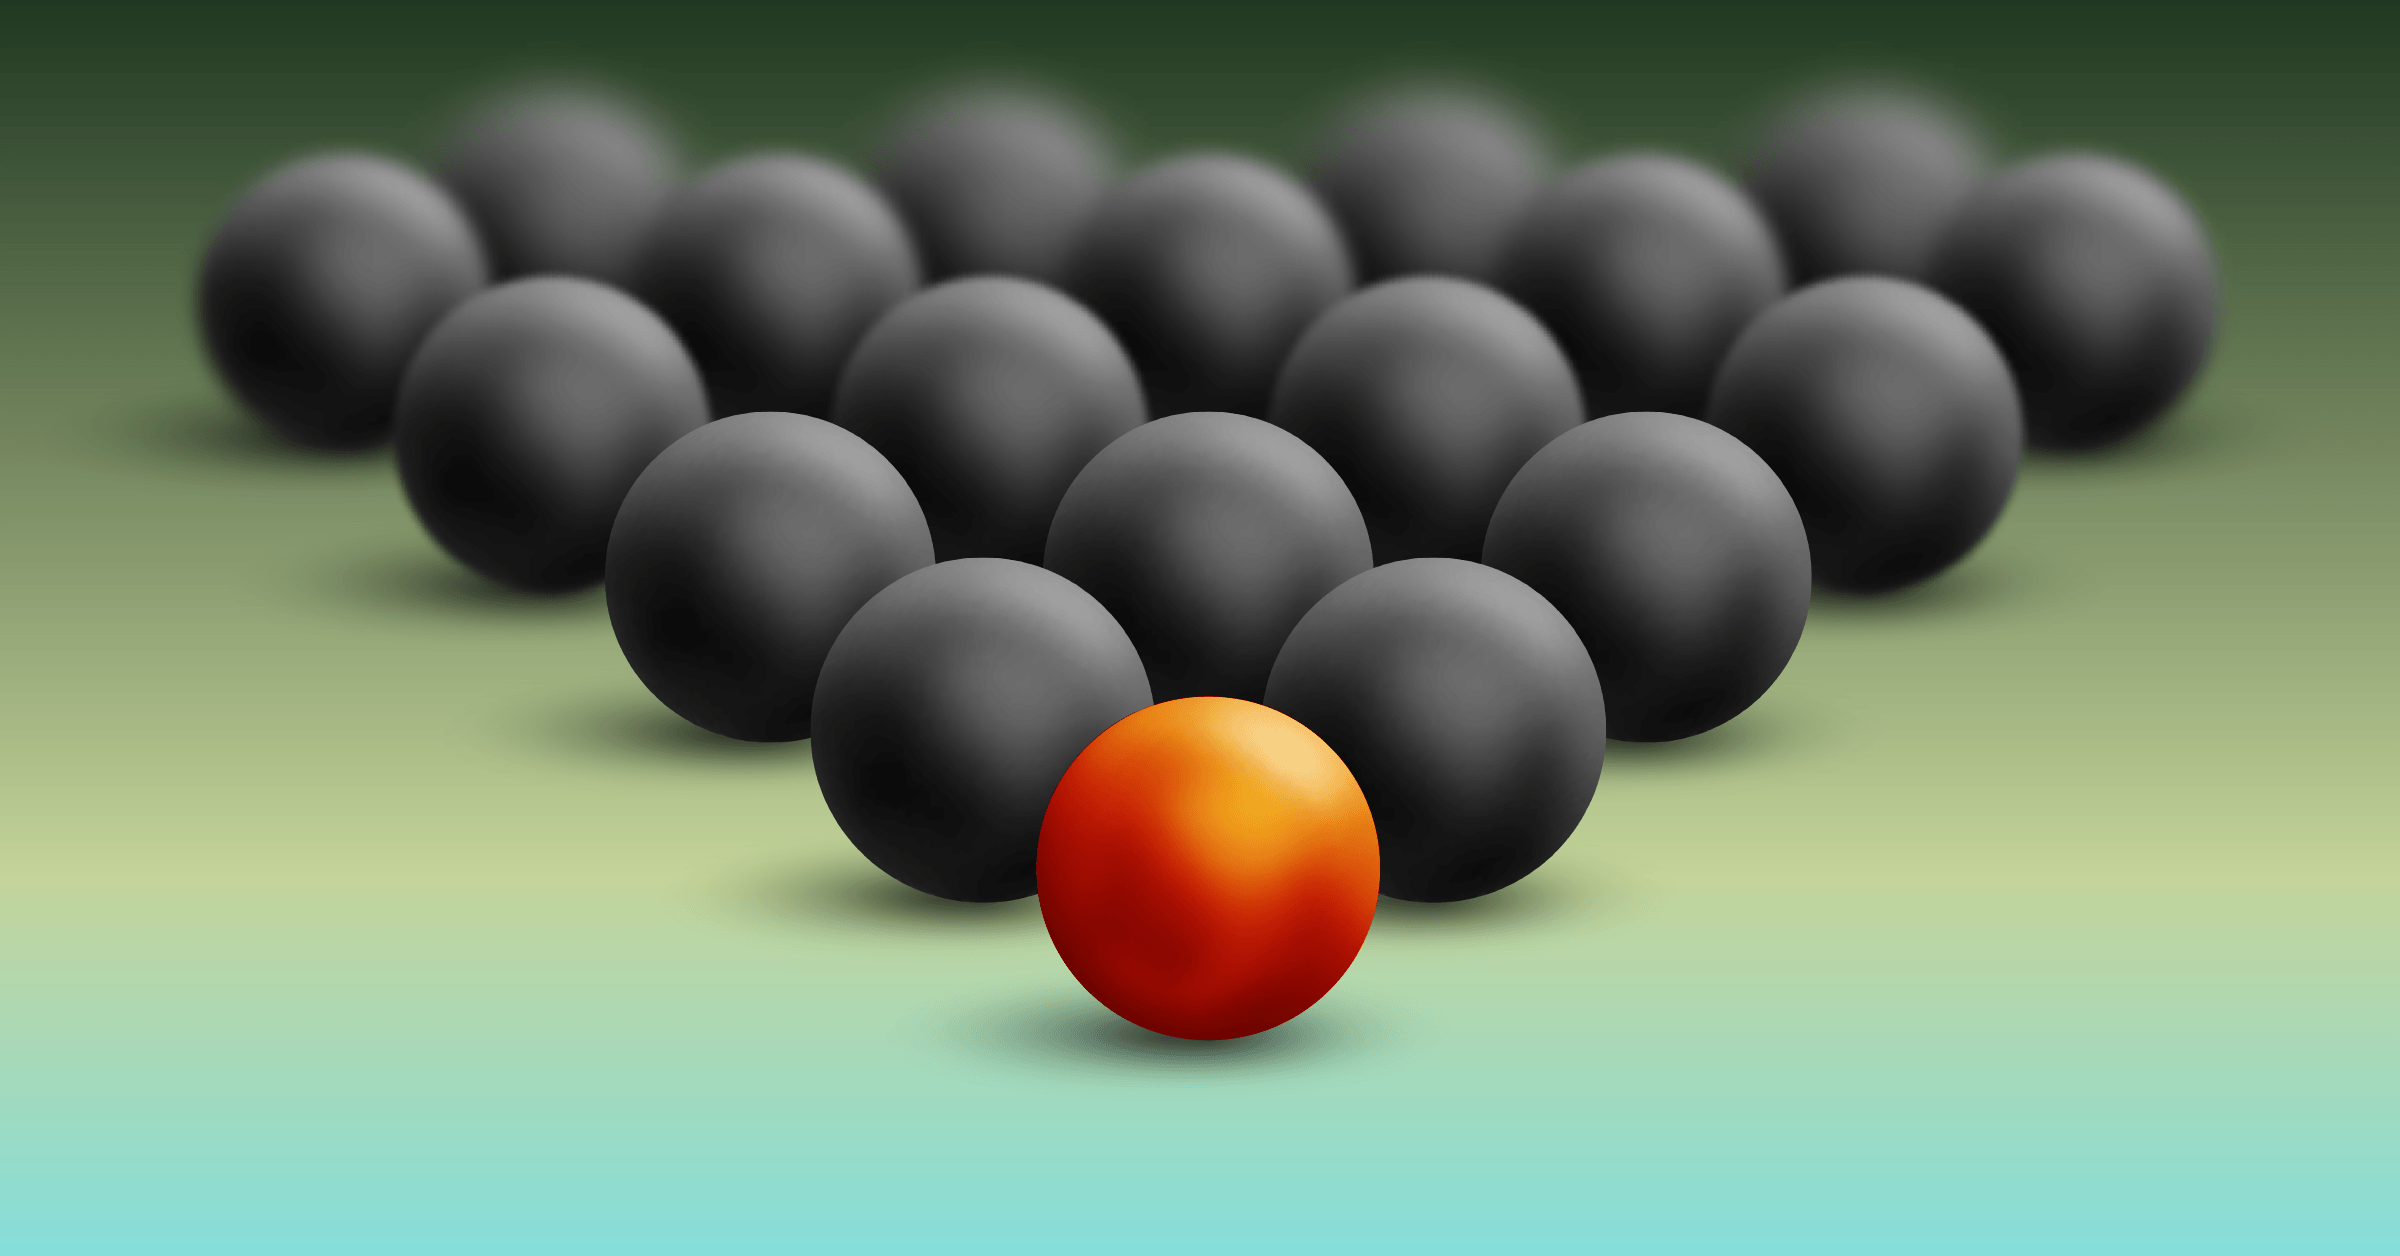 Gray balls are lined up in a triangle like pool balls. The ball at the tip of the triangle is different and tinted in a reddish-orange.